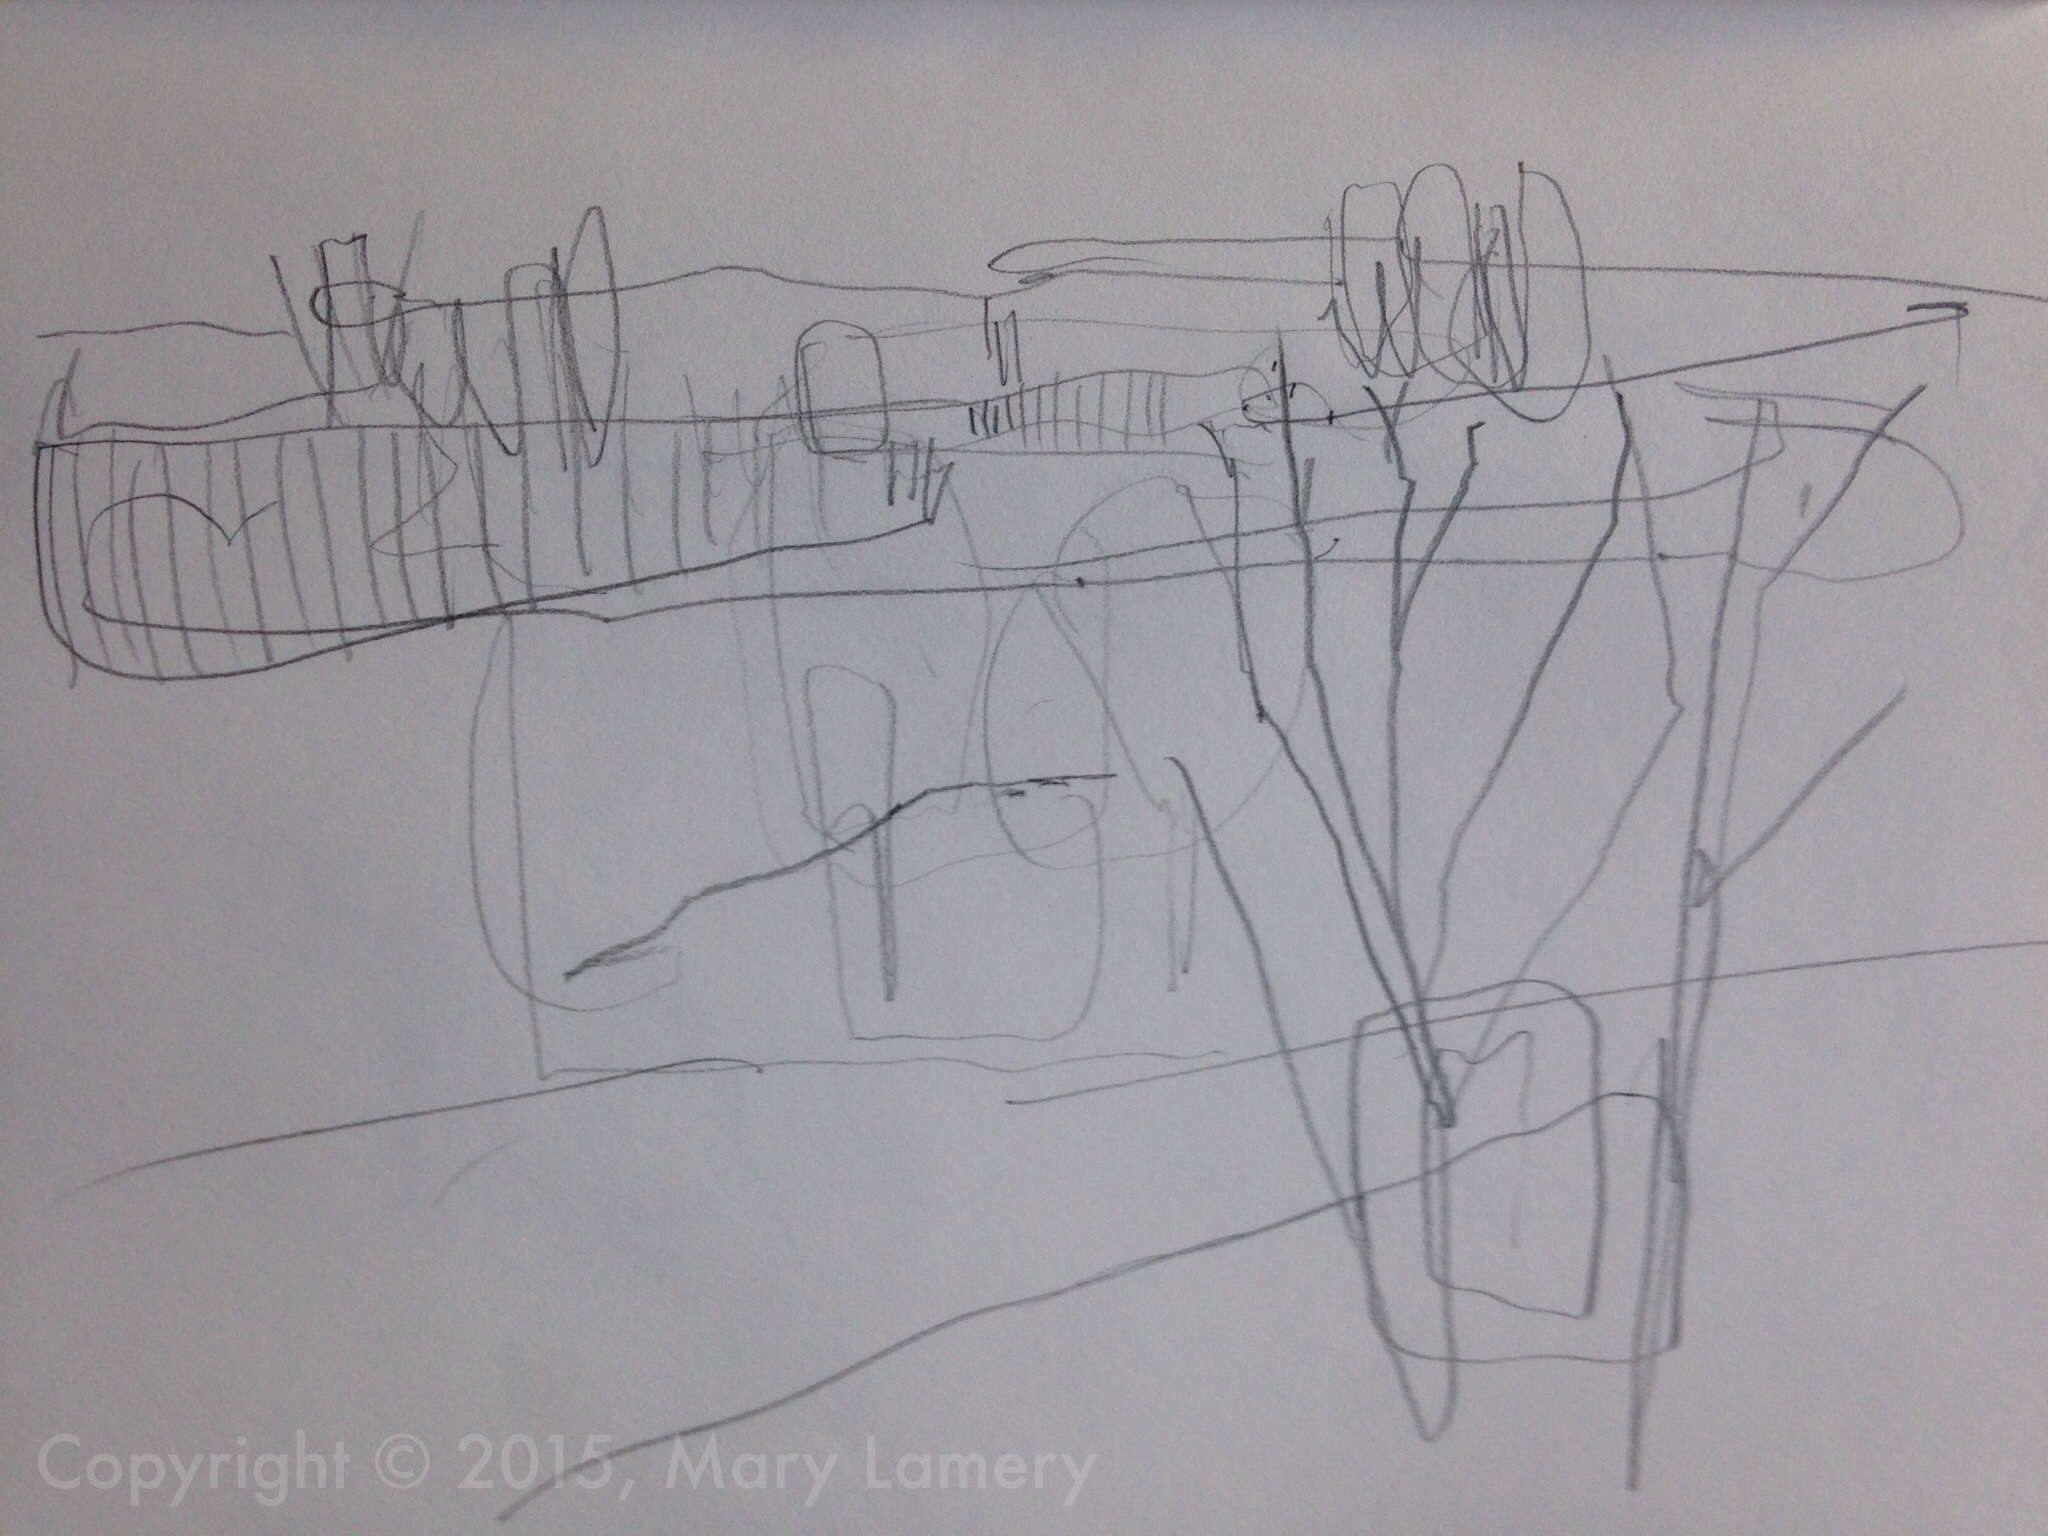 Sketch of apricot trees, orchard. March 2015.